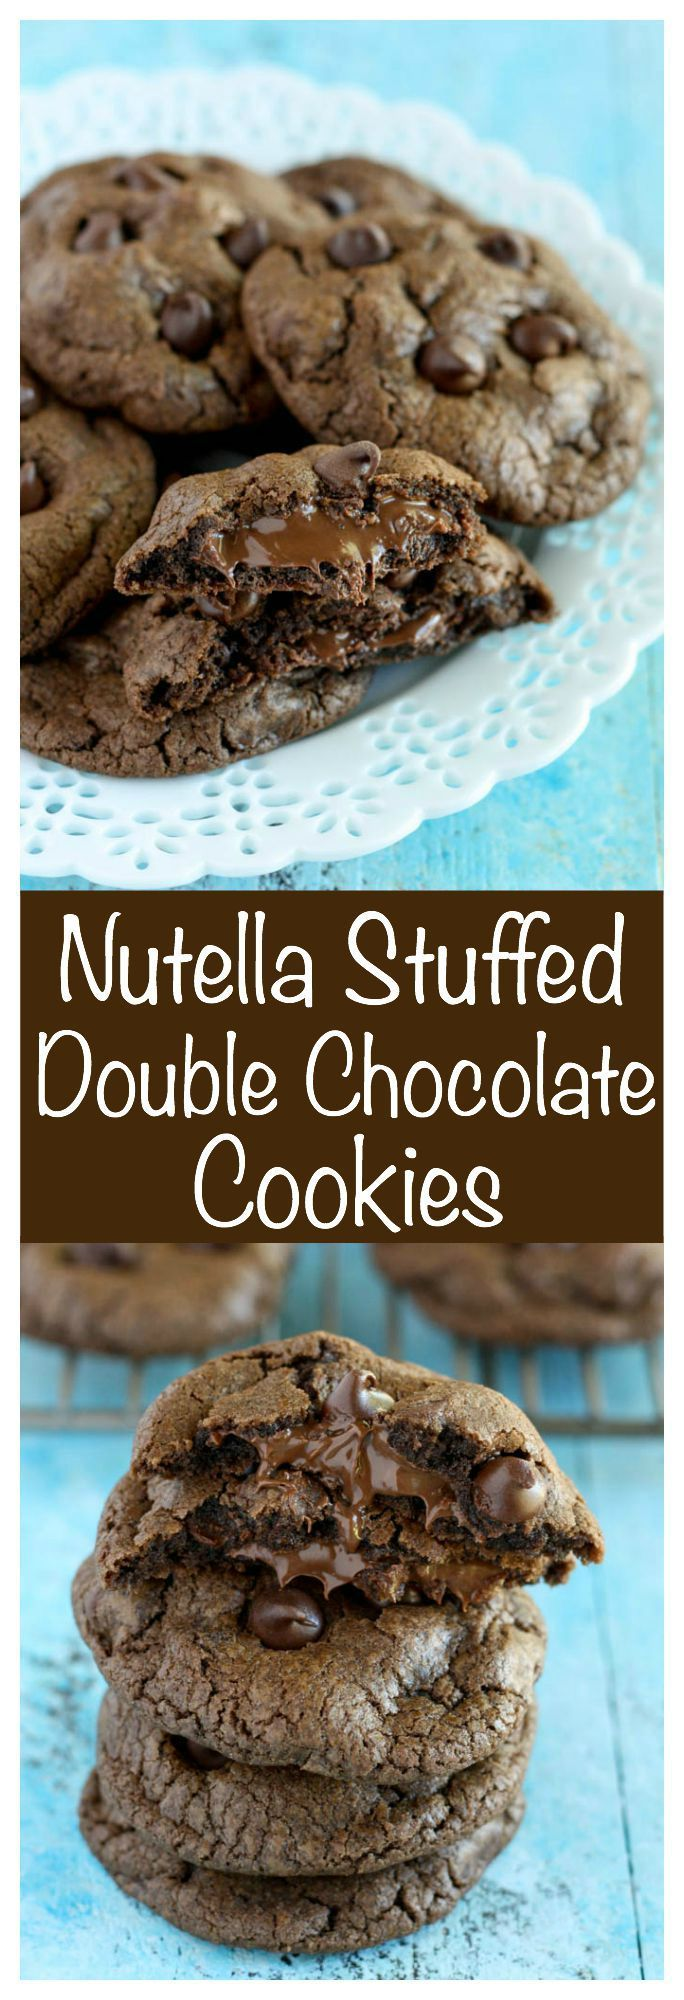 Nutella Stuffed Double Chocolate Cookies